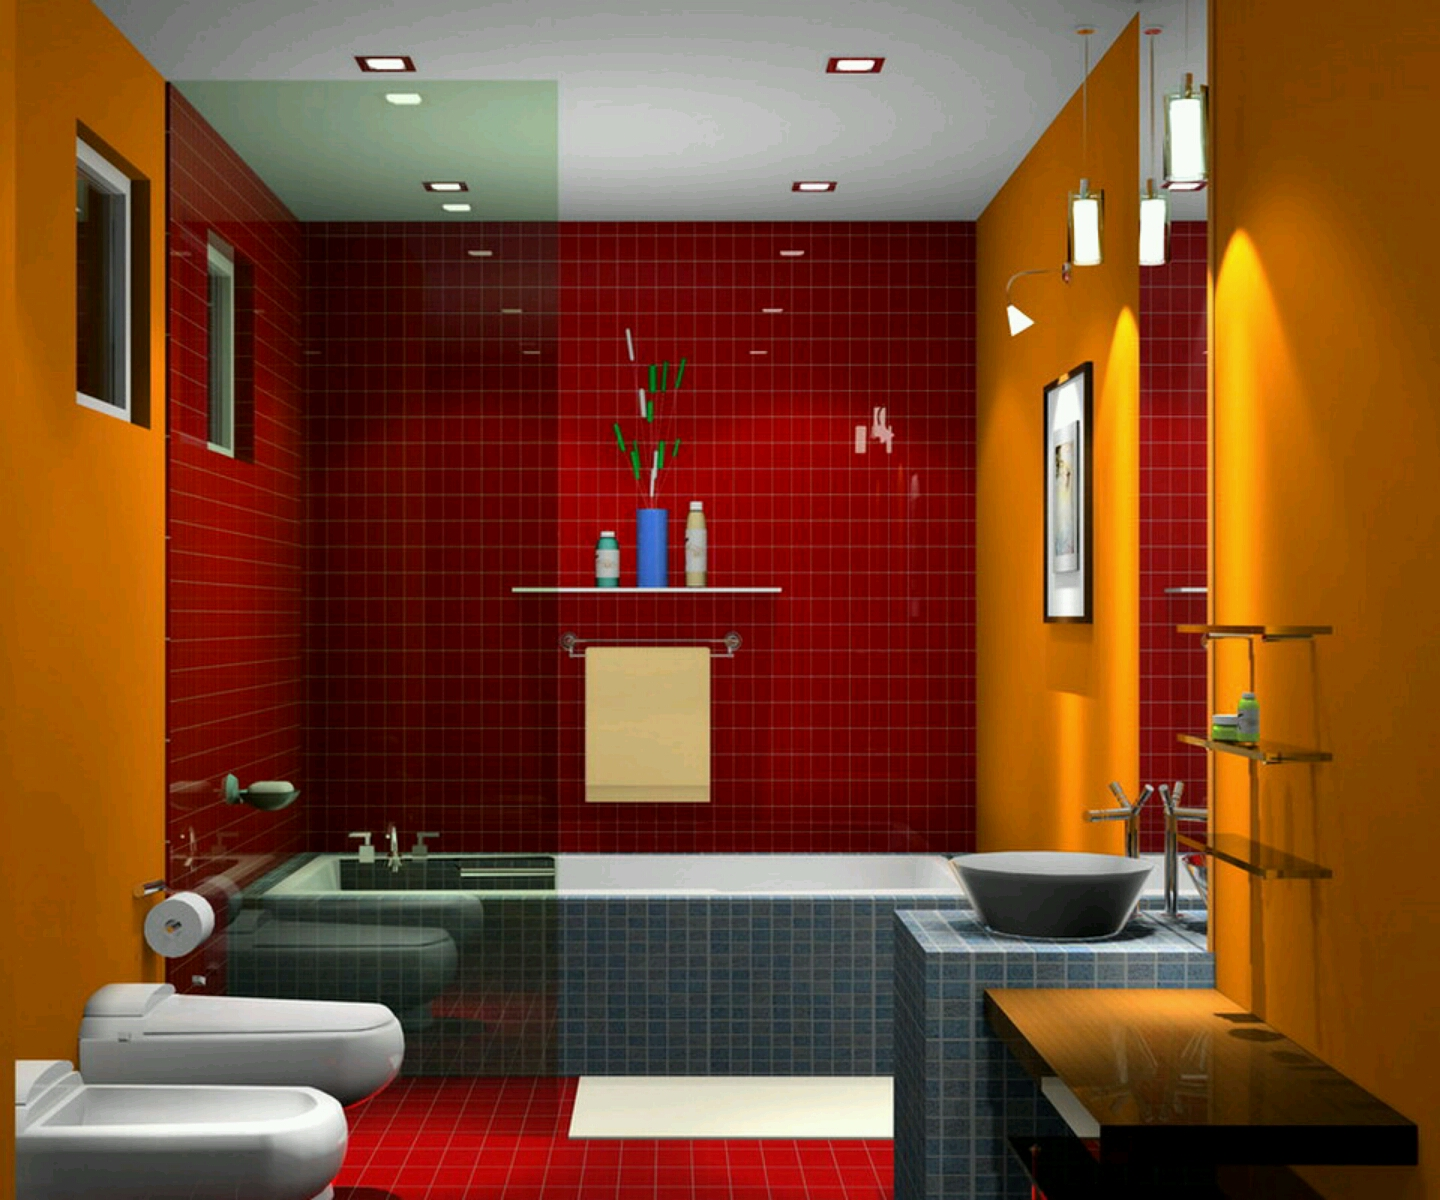 New home designs latest luxury bathrooms designs ideas for Bathroom designs org